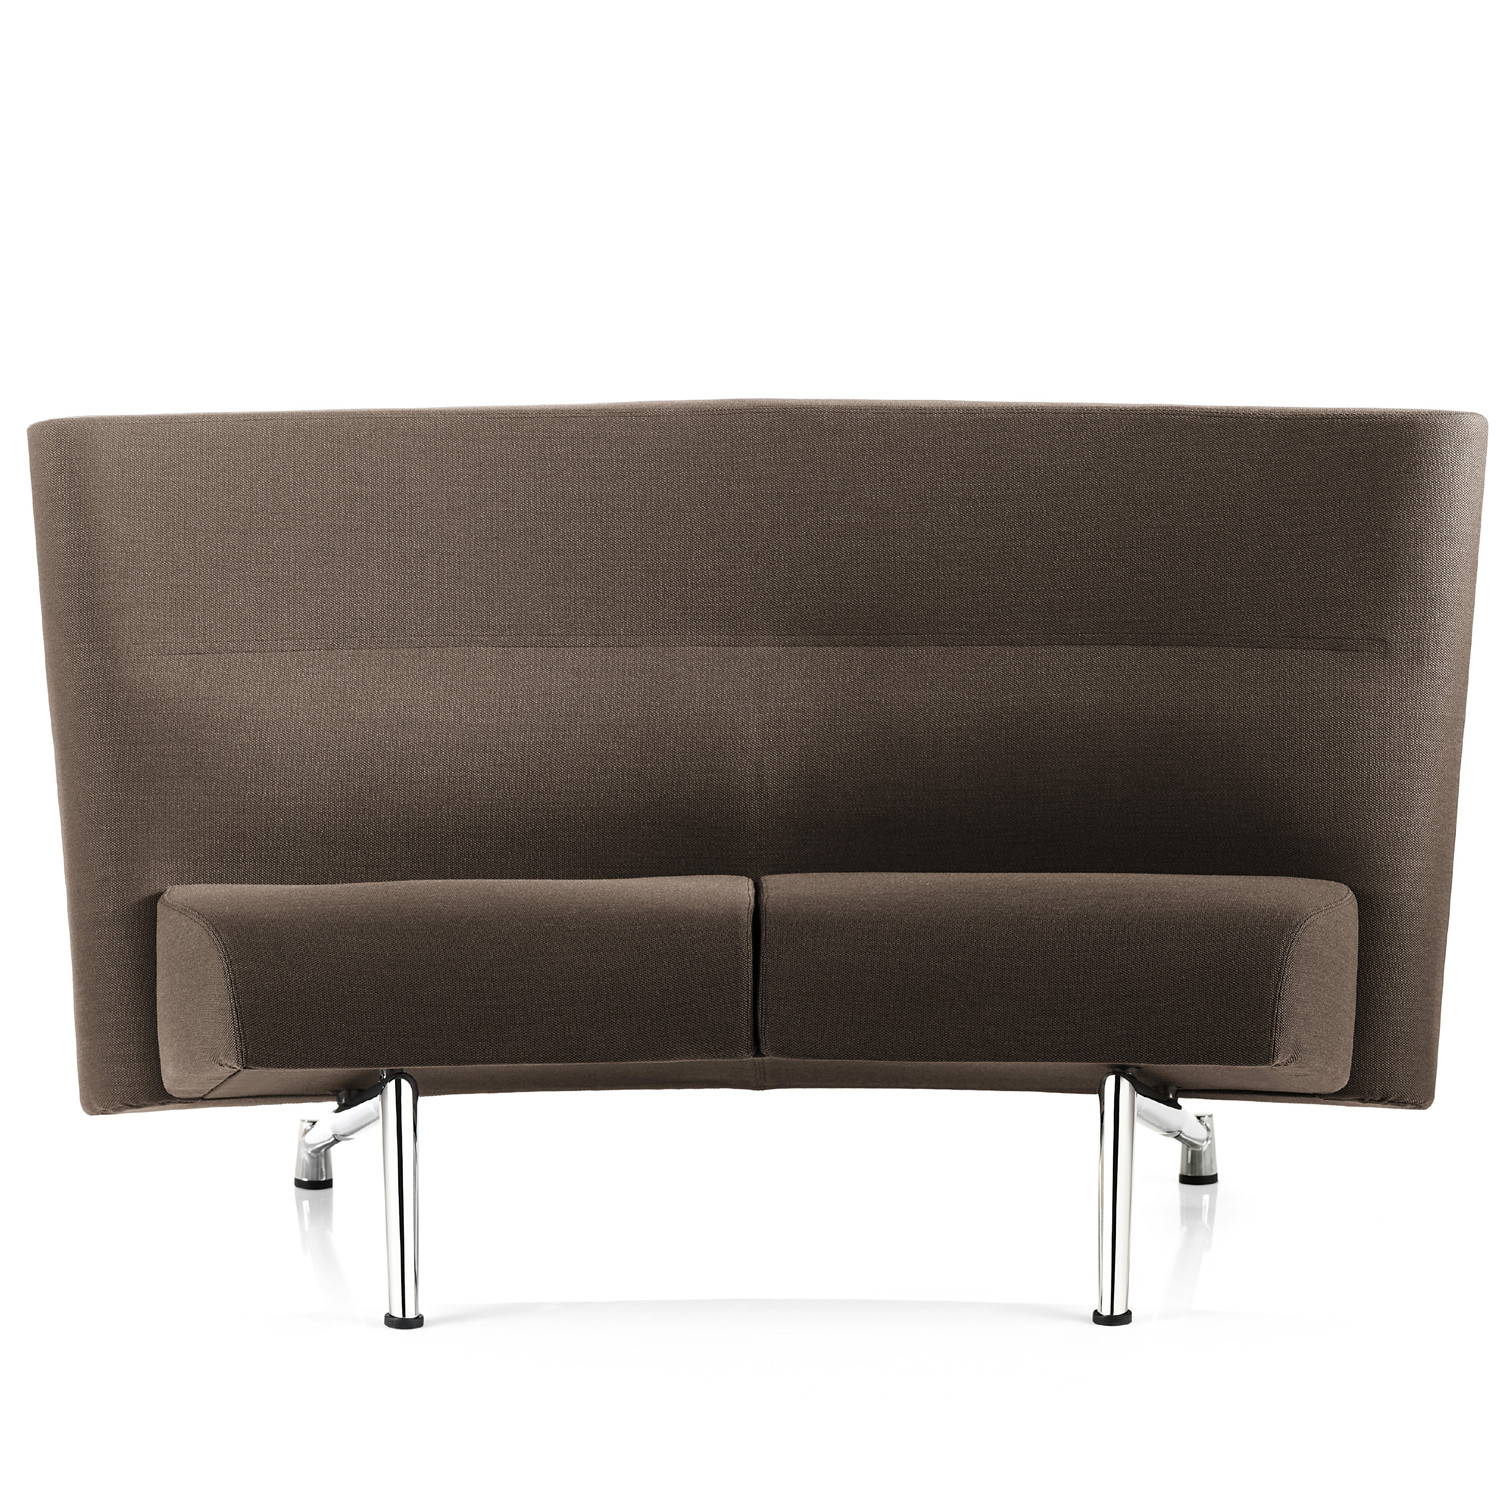 Lammhults Newport Sofa